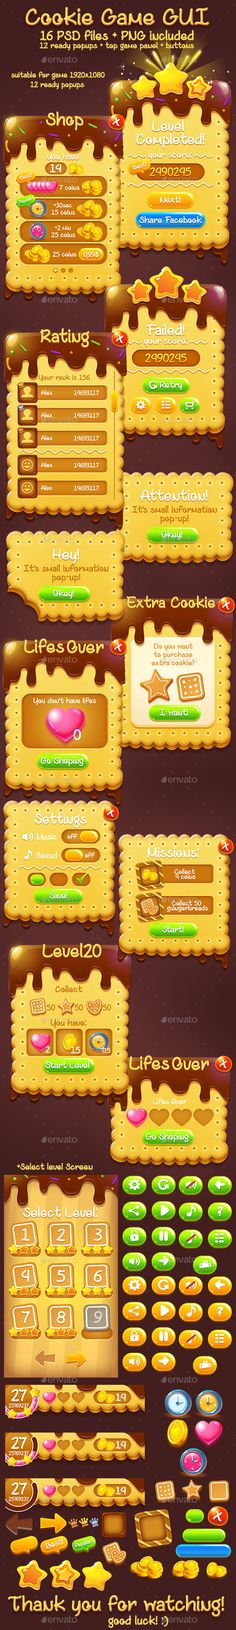 Chocolate Sweet Cookie Game GUI Set — Photoshop PSD #ui #cute • Download ➝ https://graphicriver.net/item/chocolate-sweet-cookie-game-gui-set/19059596?ref=pxcr